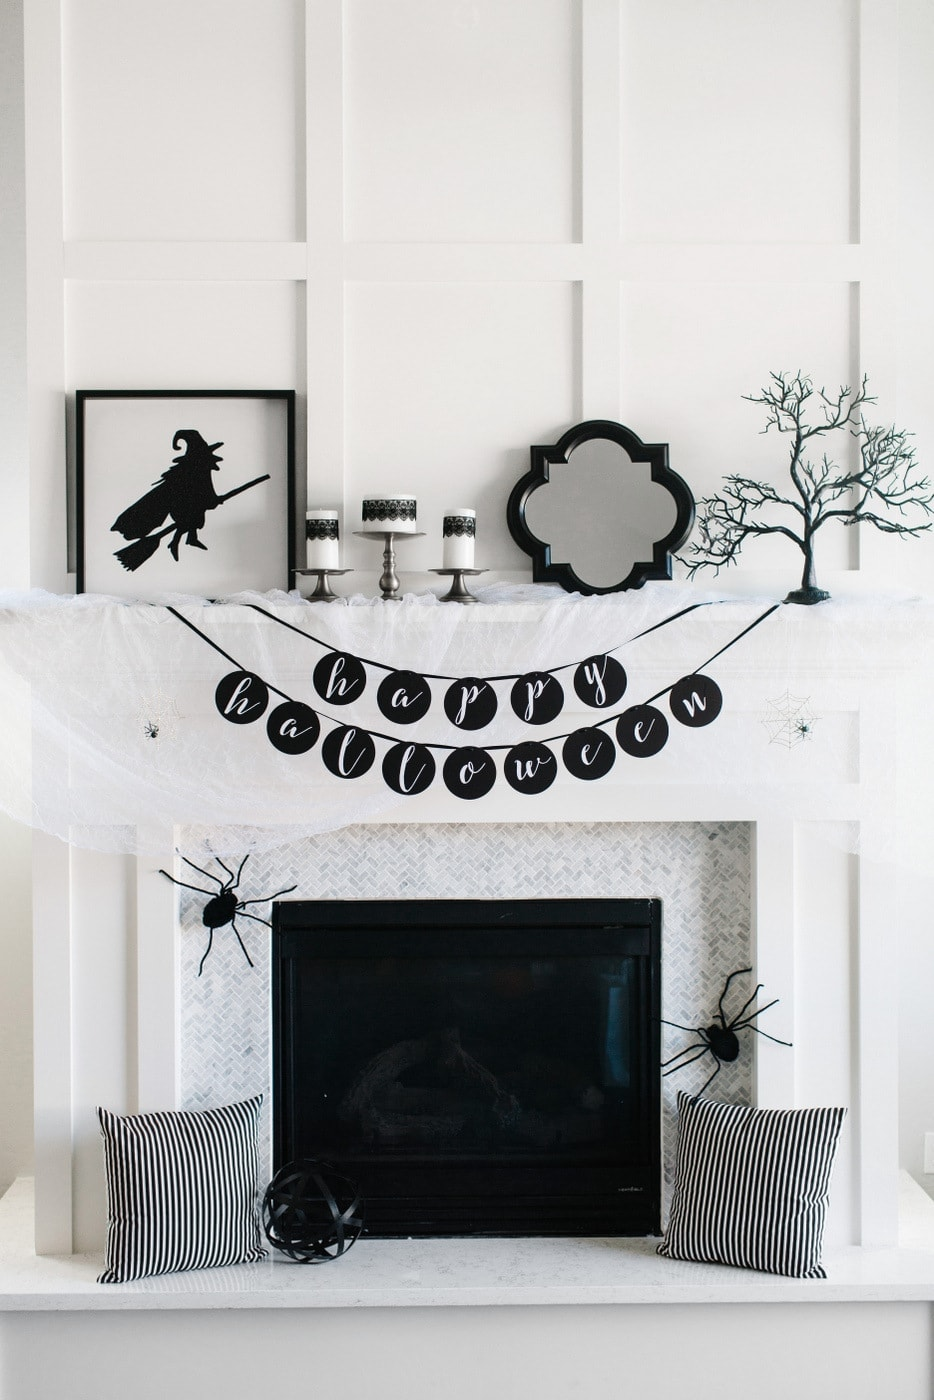 Fall mantel ideas for a halloween mantel using black and white decor and fake spiders